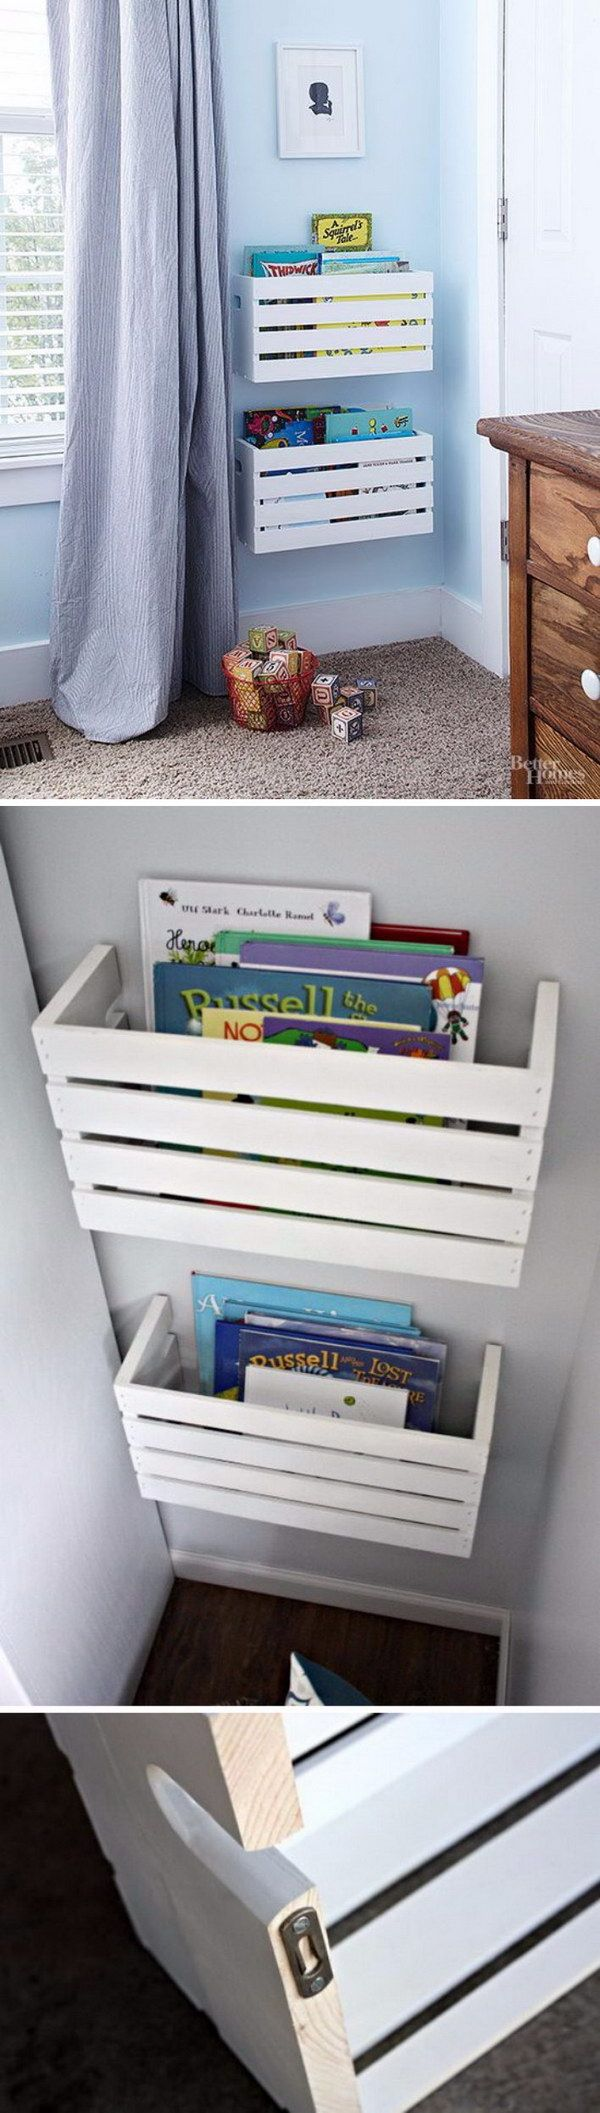 Make Great Crate Book Storage for Unused Wall Space.                                                                                                                                                                                 More